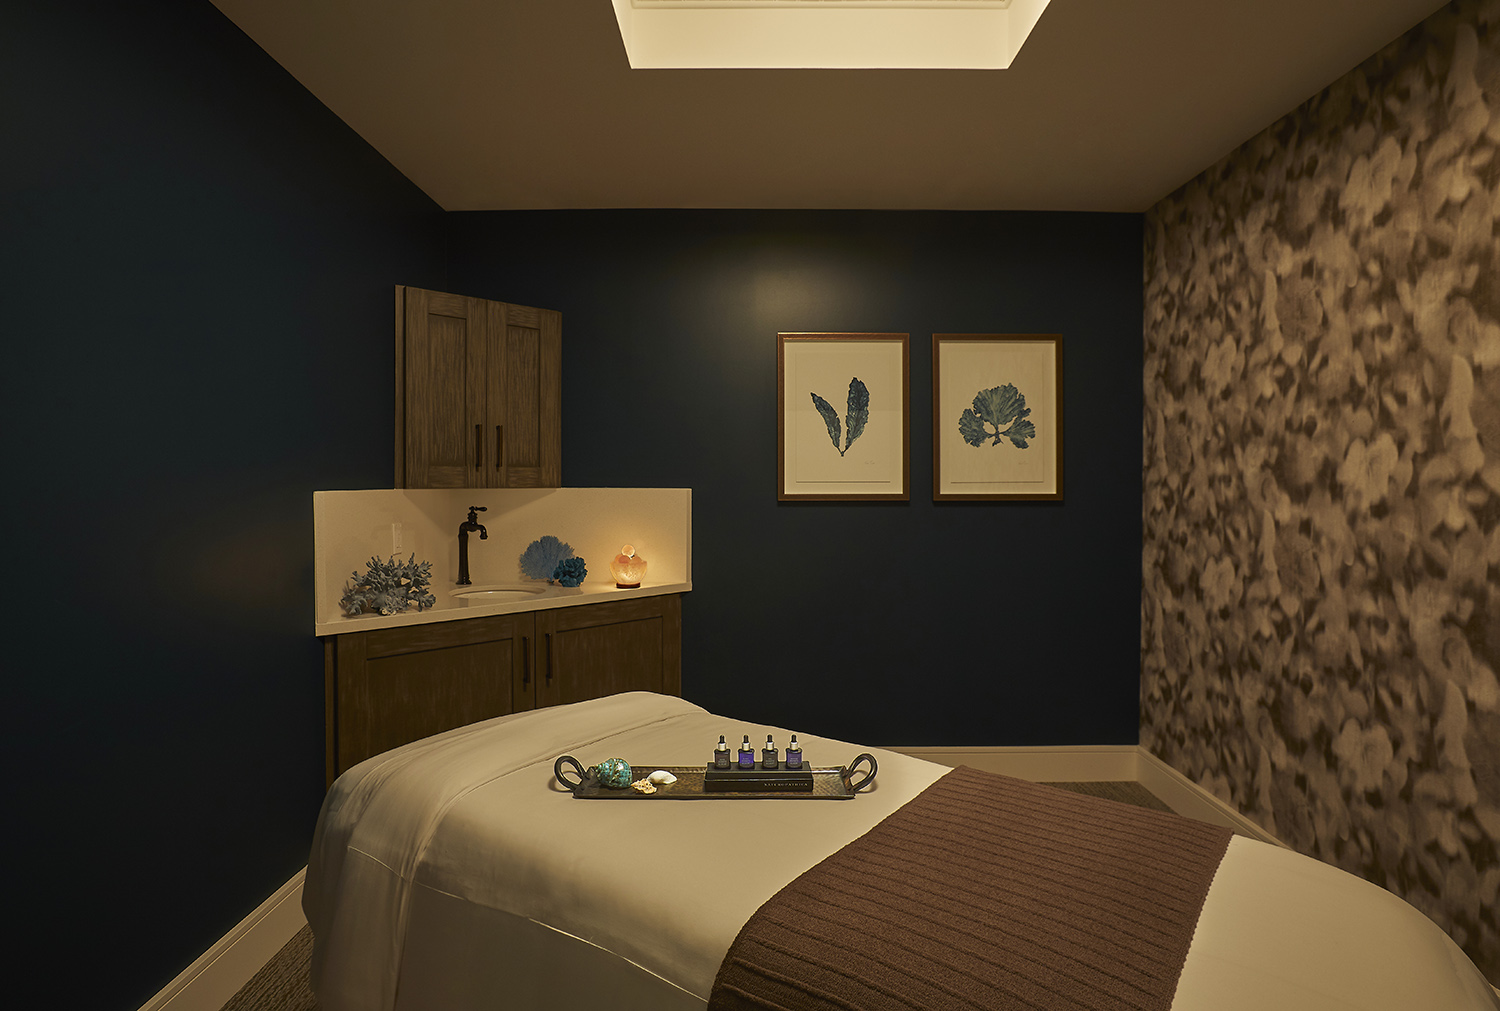 The spa also has ongoing Happy Hour Specials, which include massages, facials, nails, scrubs and champagne.